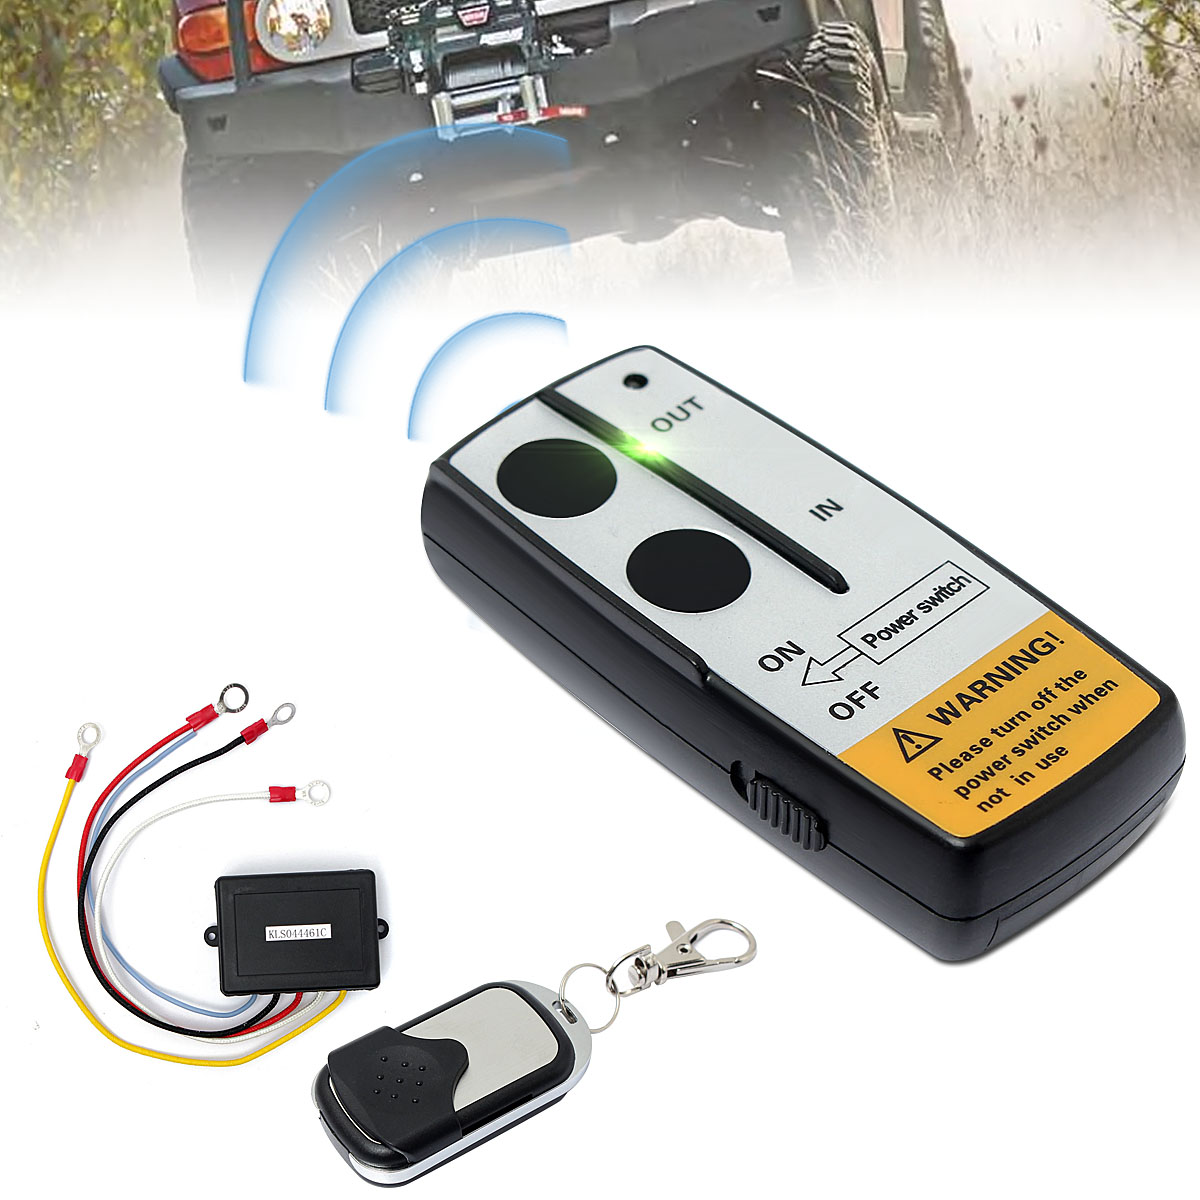 hight resolution of 12v 50ft cordless car electric wireless winch remote control handset switch remote control switch unit kits for truck atv suv trailer walmart com